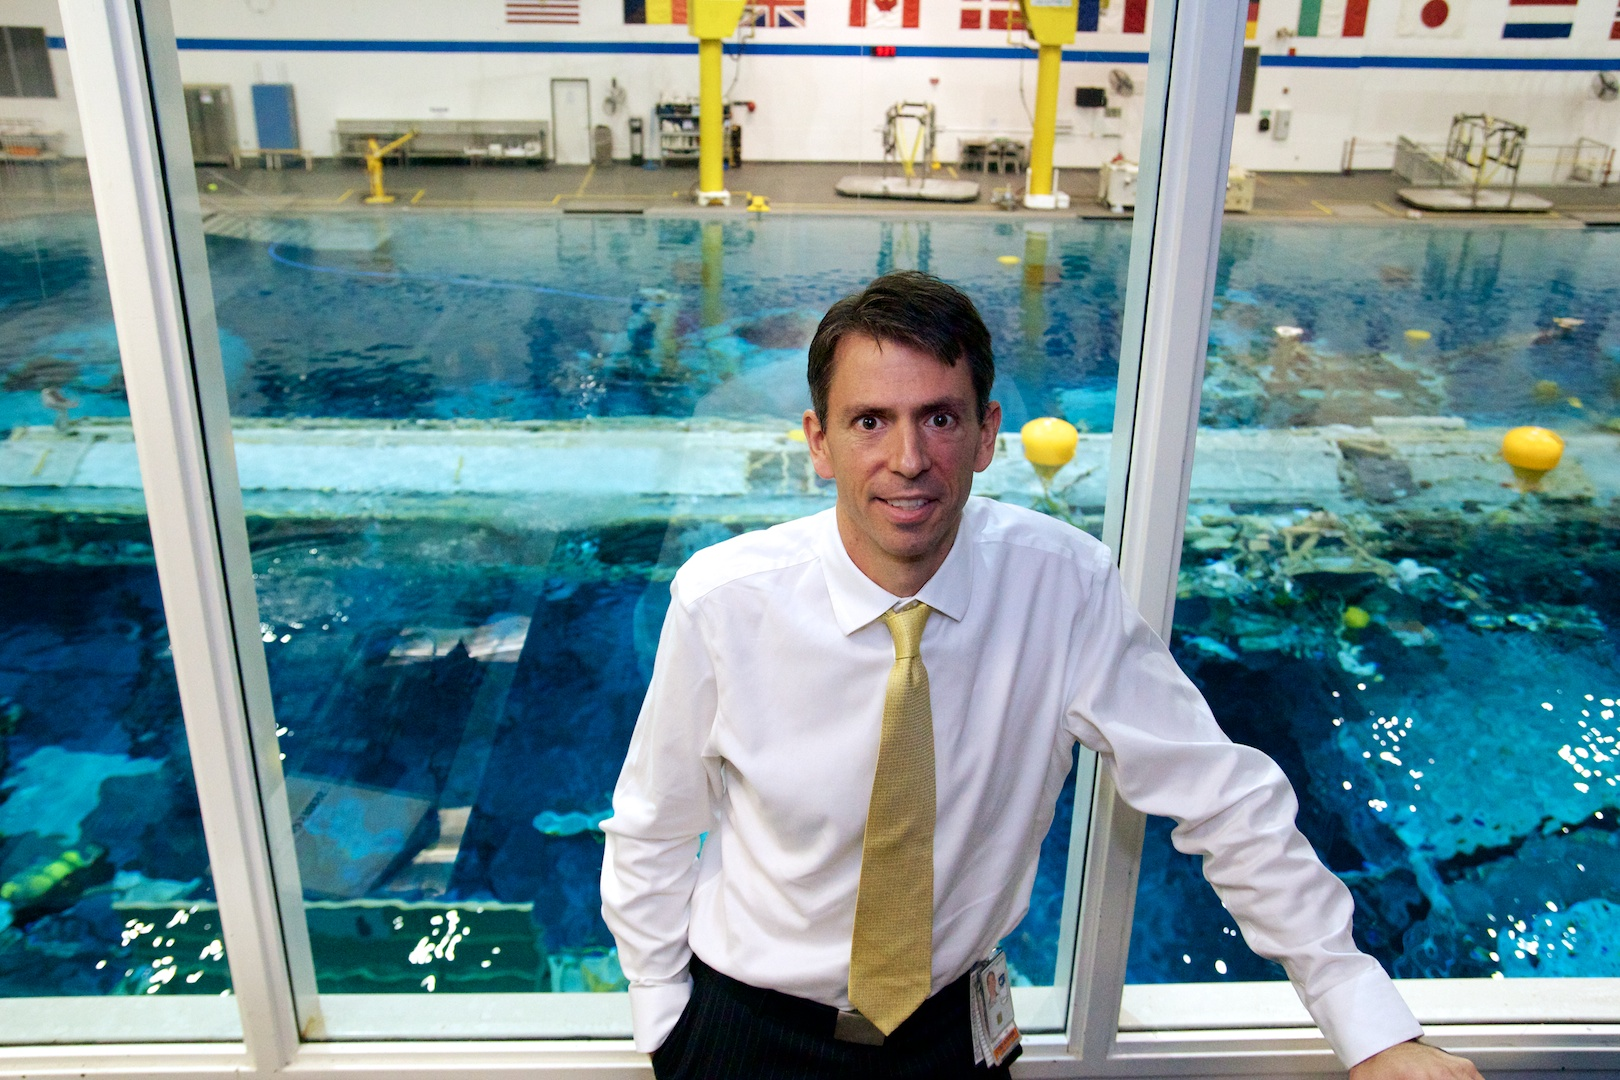 "NASA EVA Task Group manager Zeb Scoville, standing in one of the test coordinator control rooms at the <a href=""http://arstechnica.com/science/2013/03/swimming-with-spacemen/"">Neutral Buoyancy Laboratory</a>. Visible behind him is the NBL pool."